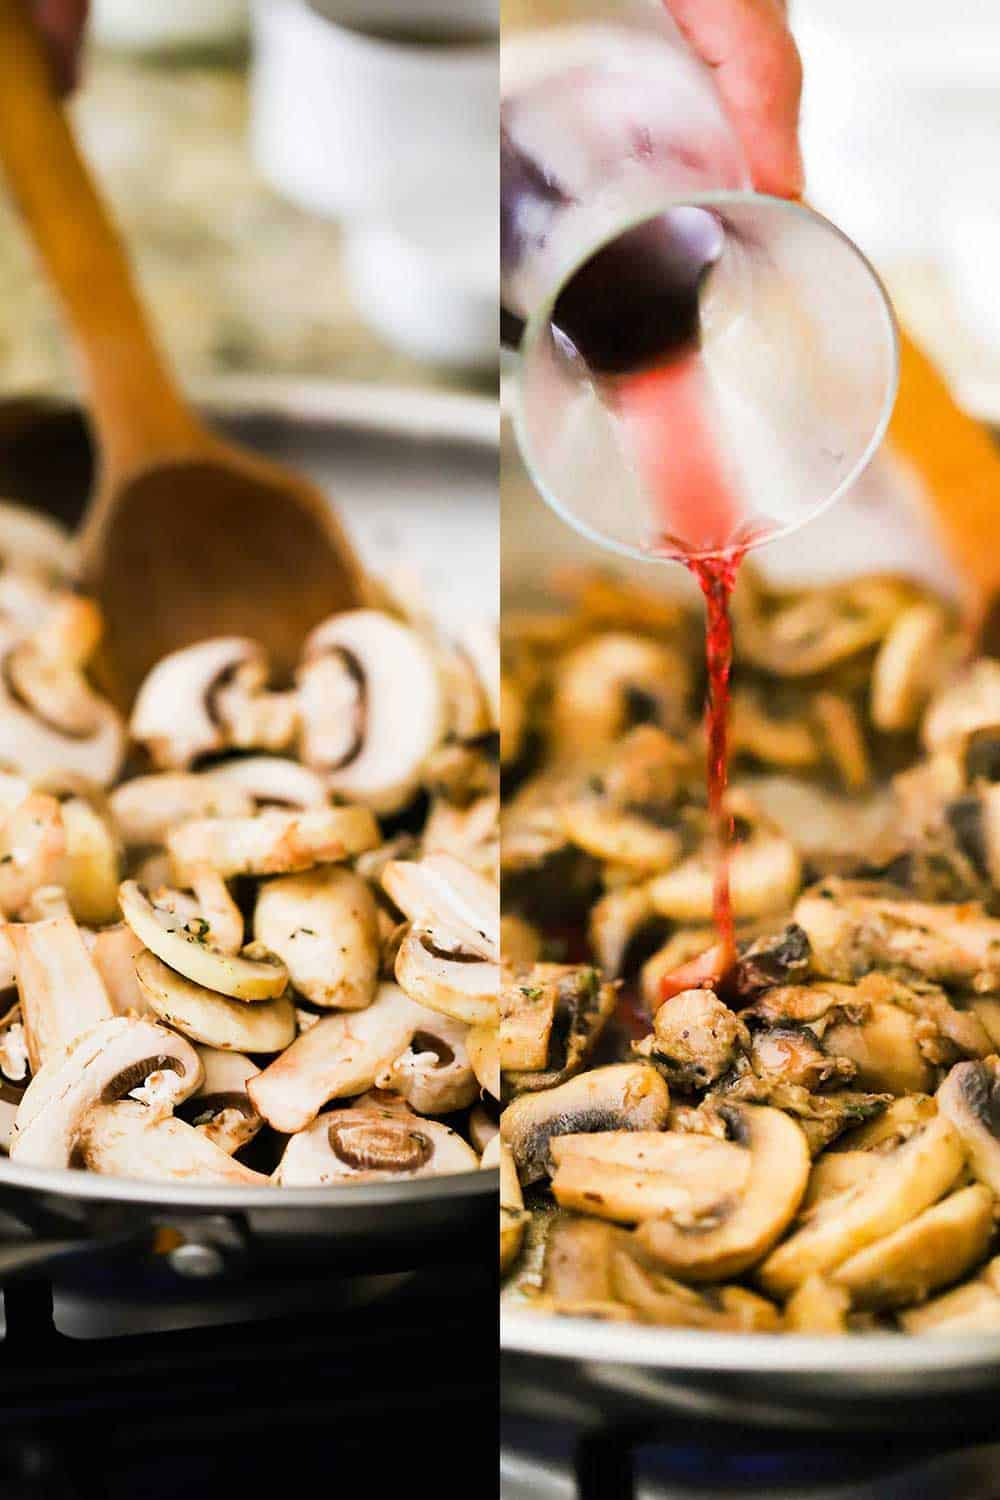 Two side by side photos, the first of sliced mushrooms in a skillet with a wooden spoon and the second photo is red wine being poured into the skillet with the mushrooms.